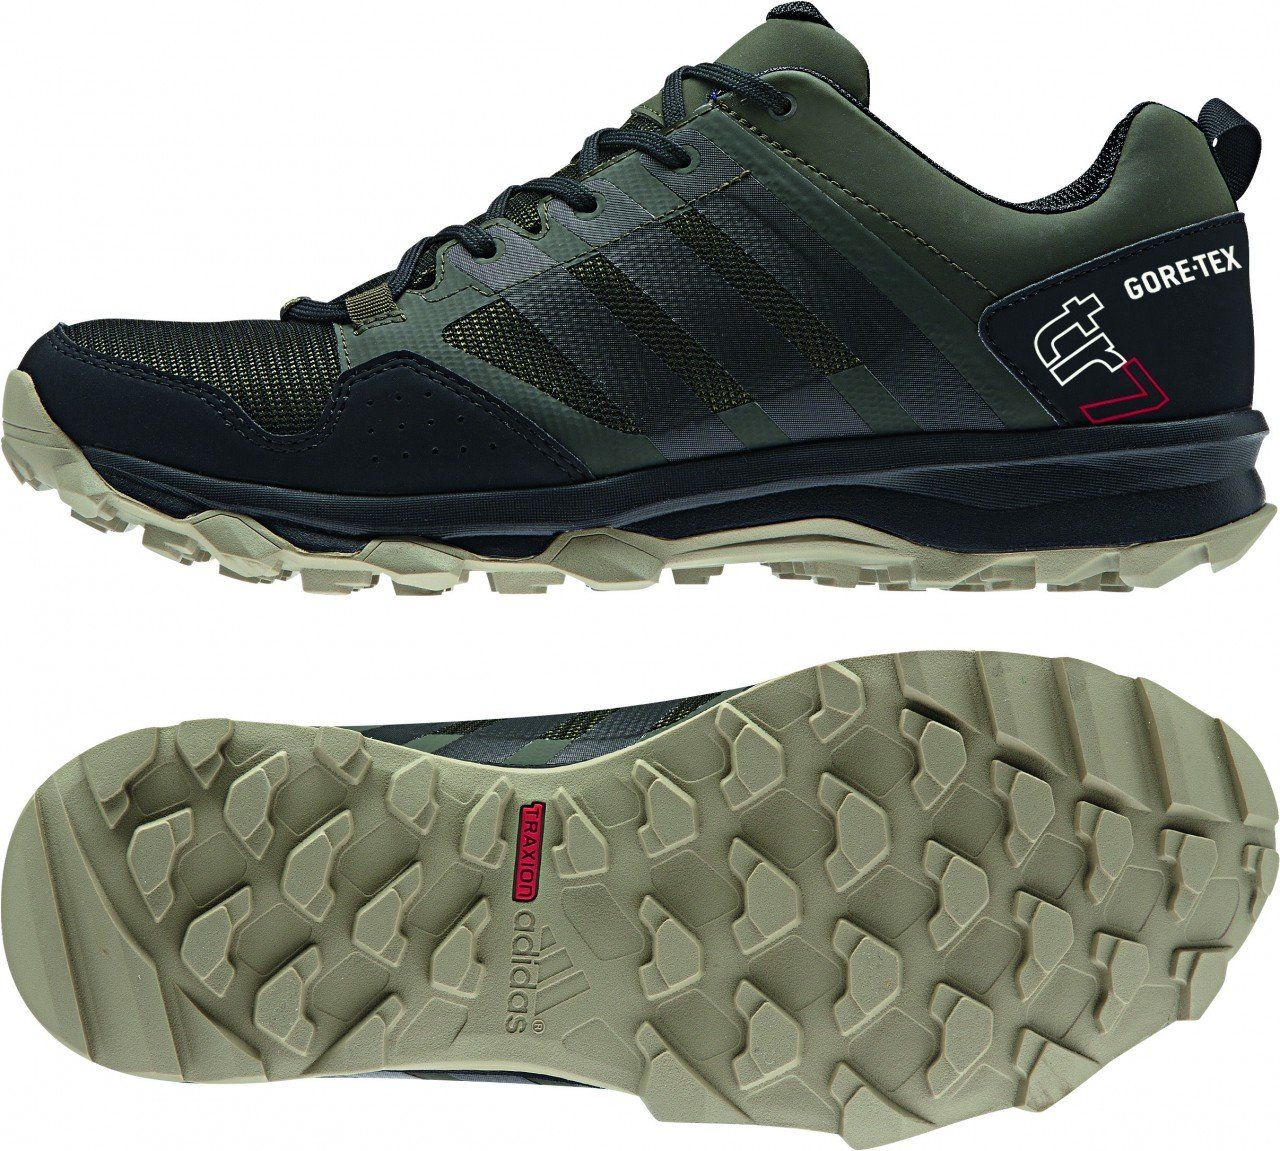 Adidas Kanadia 7 TR GTX (S77752): Amazon.co.uk: Shoes